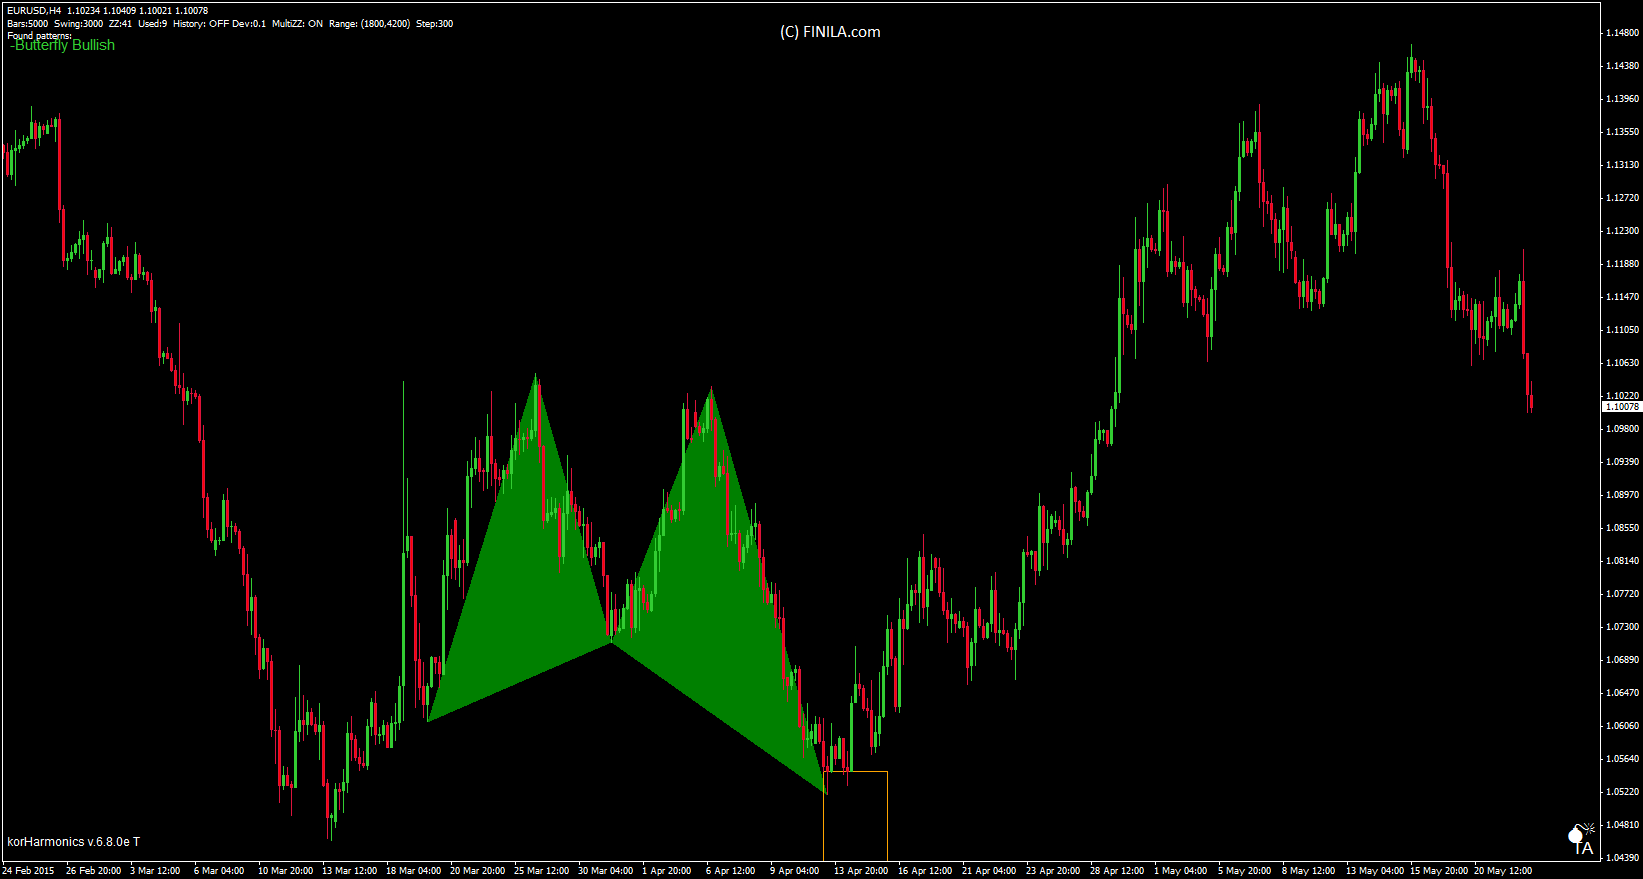 Harmonic patterns | Best trading tools and information